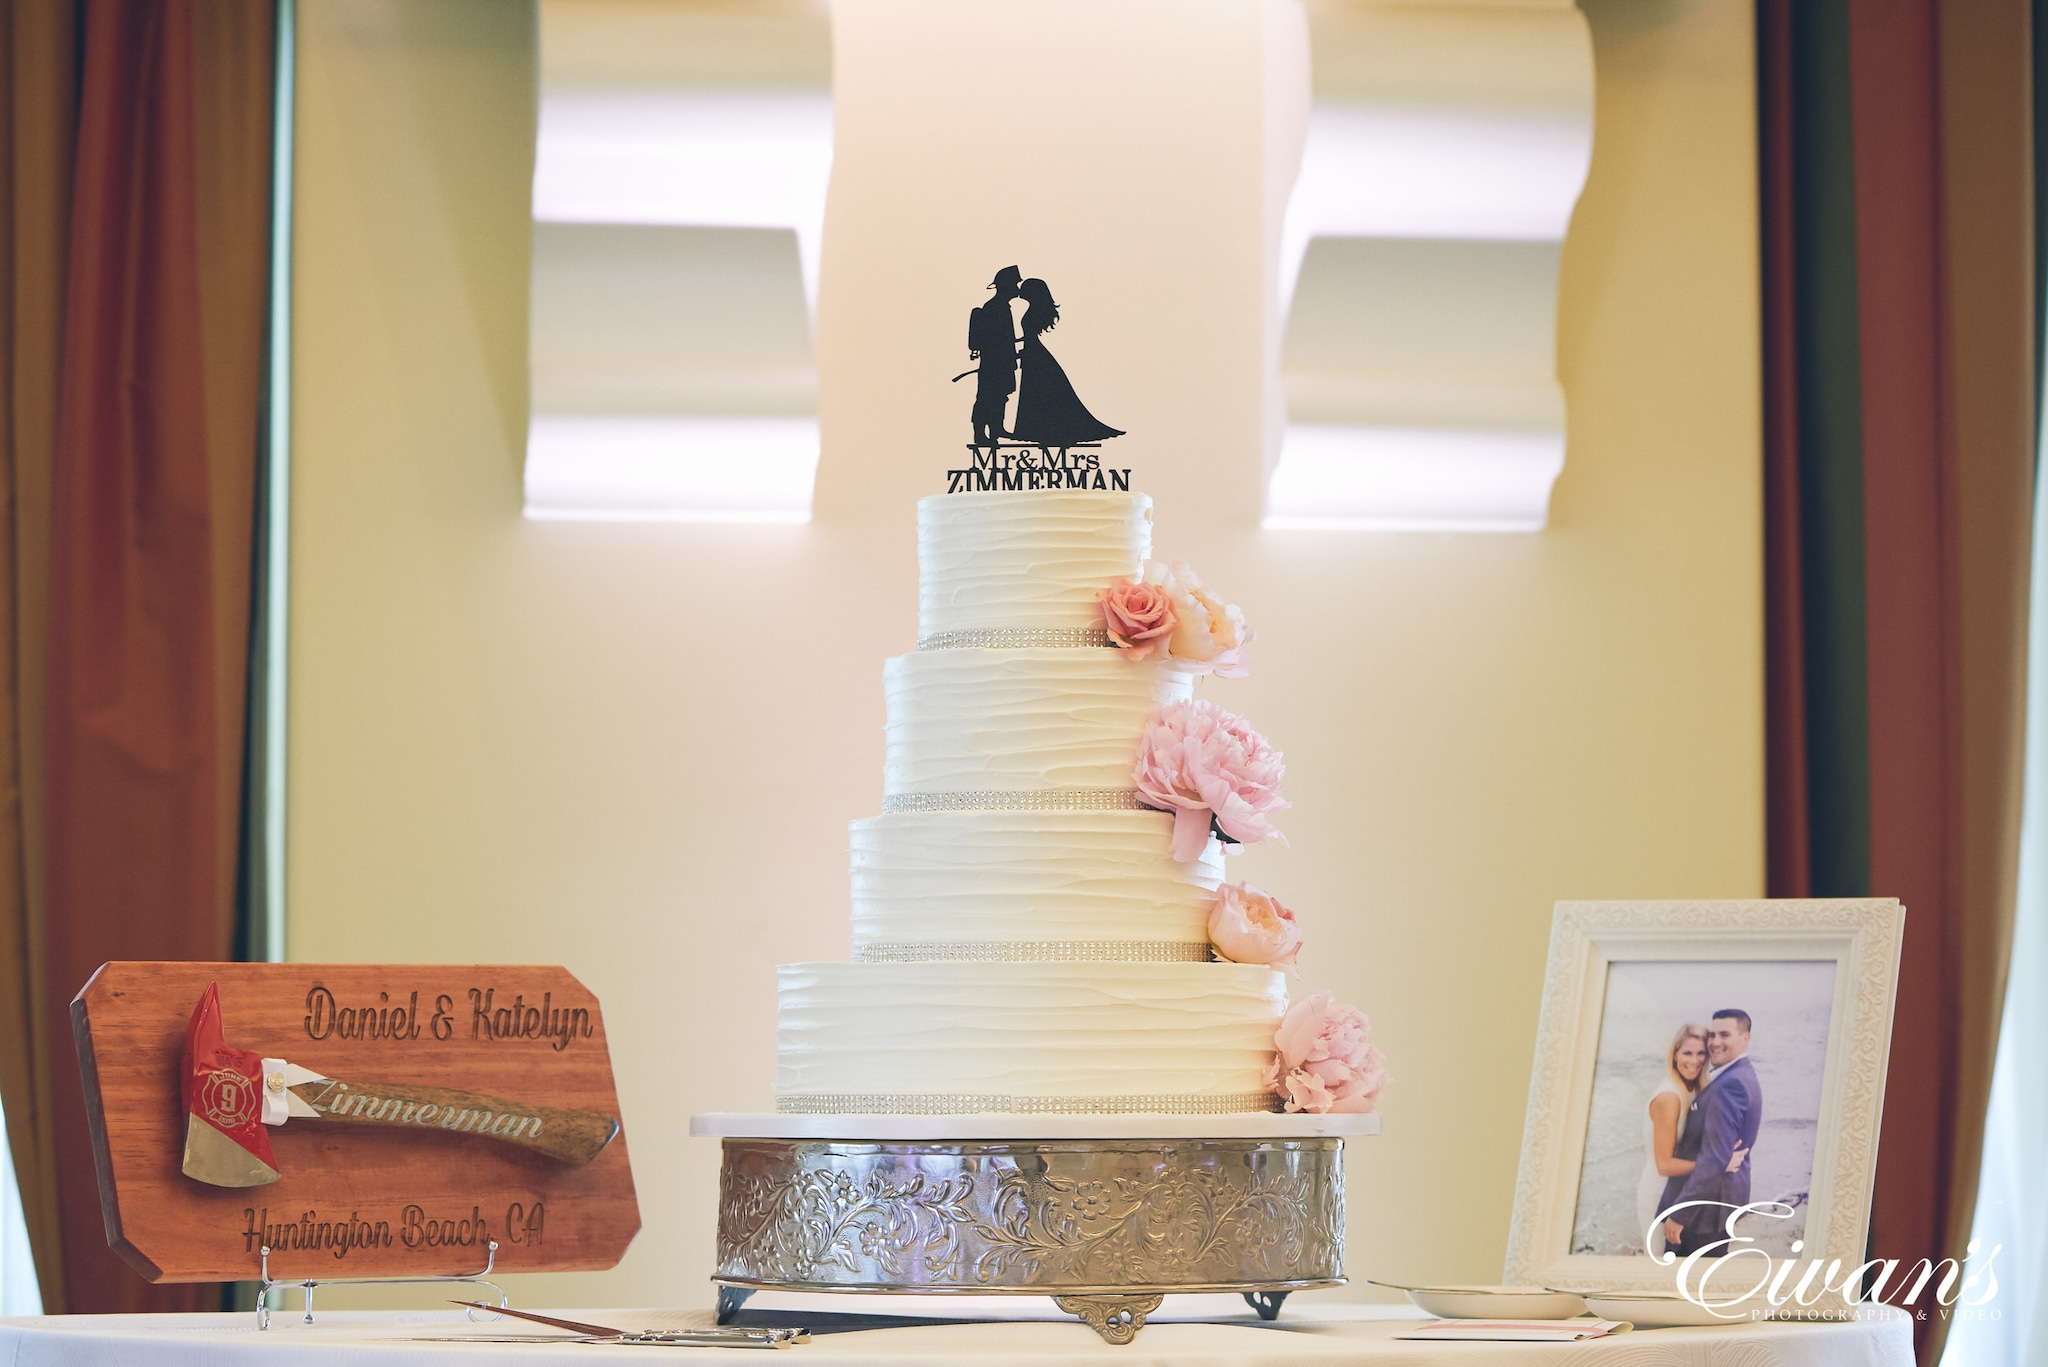 four teared wedding cake, an axe, and a picture frame